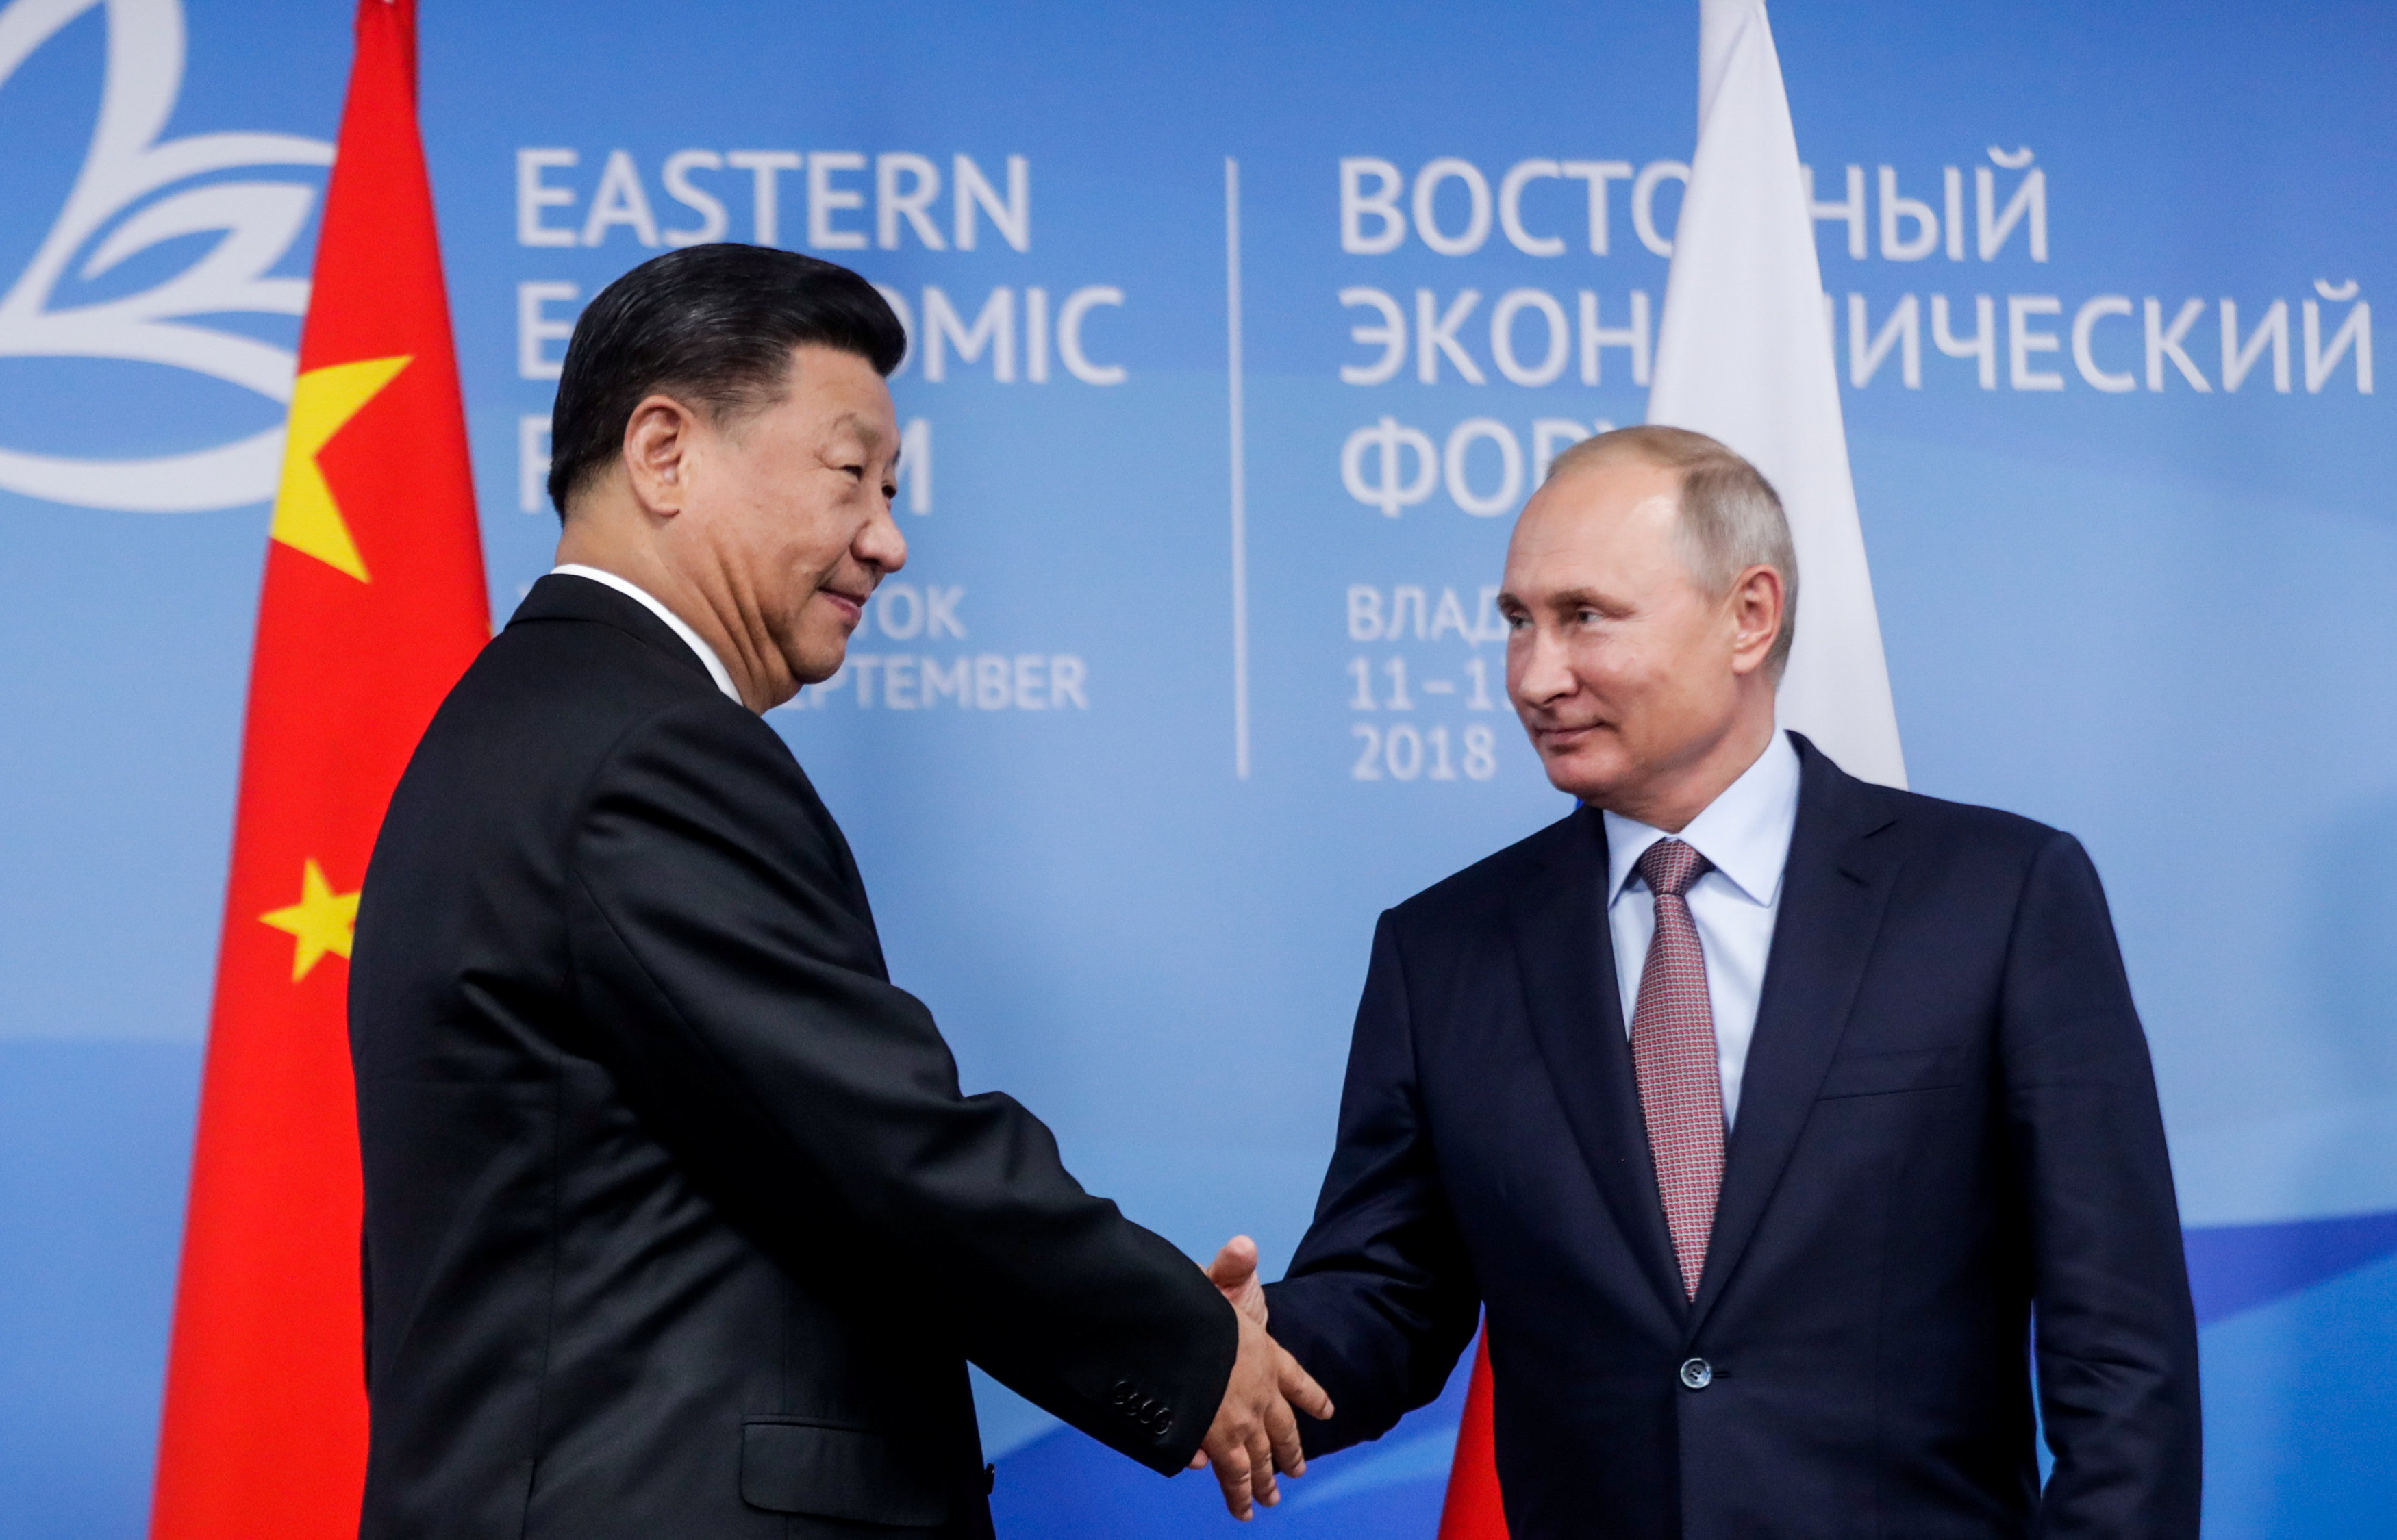 Russian President Vladimir Putin shakes hands with Chinese President Xi Jinping during their meeting on the sidelines of the Eastern Economic Forum in Vladivostok, Russia September 11, 2018. Mikhail Metzel/TASS Host Photo Agency/Pool via REUTERS